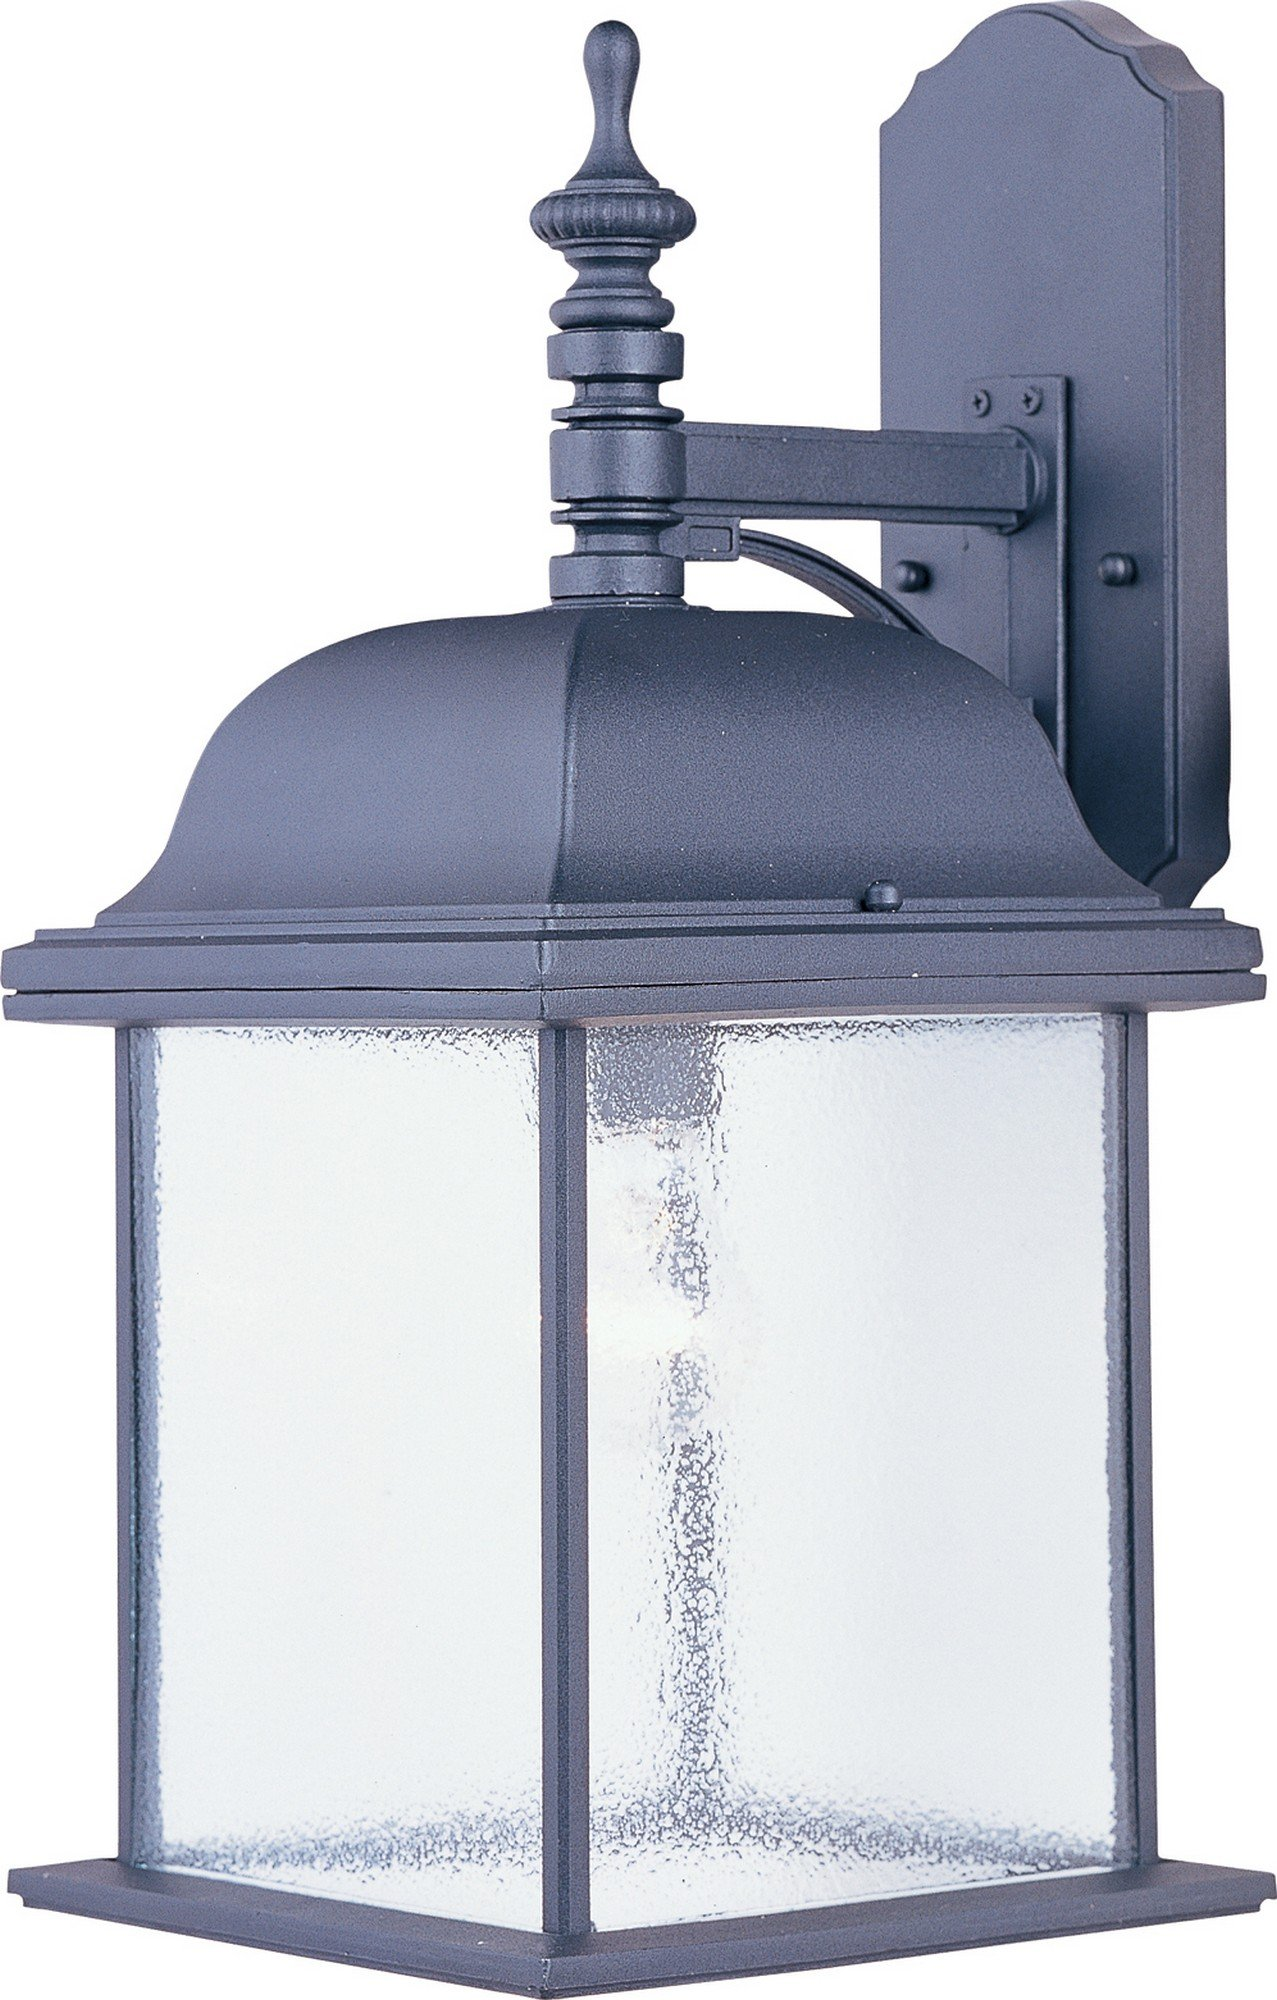 Maxim 1057BK Senator 1-Light Outdoor Wall Lantern, Black Finish, Seedy Glass, MB Incandescent Incandescent Bulb , 100W Max., Dry Safety Rating, Standard Dimmable, Glass Shade Material, 5750 Rated Lumens